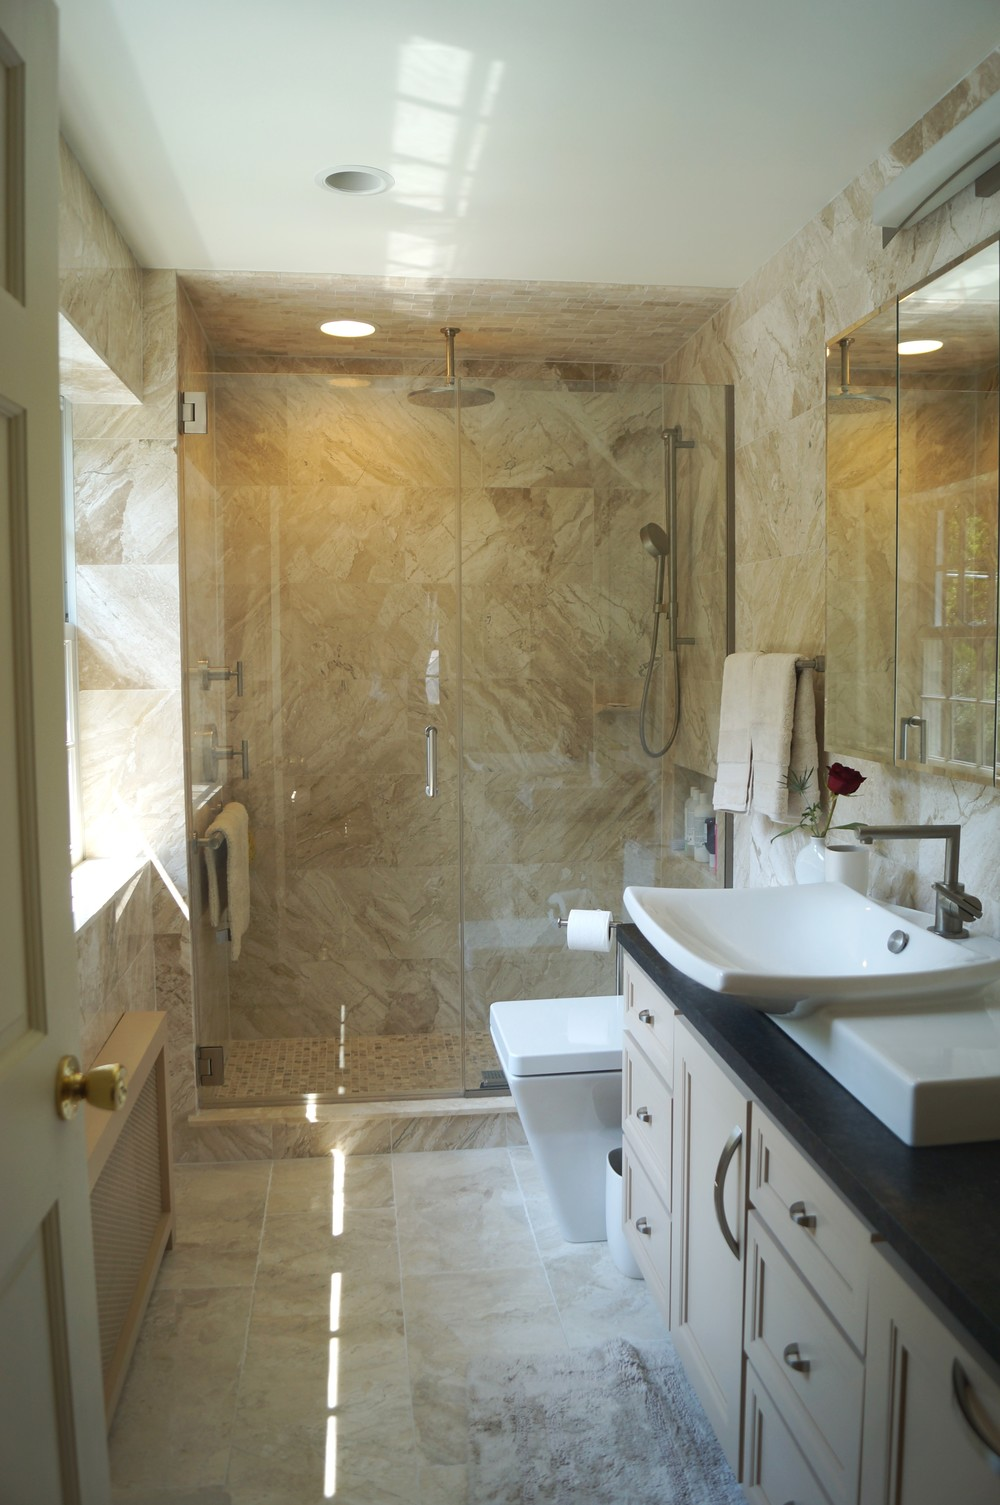 Bathroom remodel in Jenkintown, PA